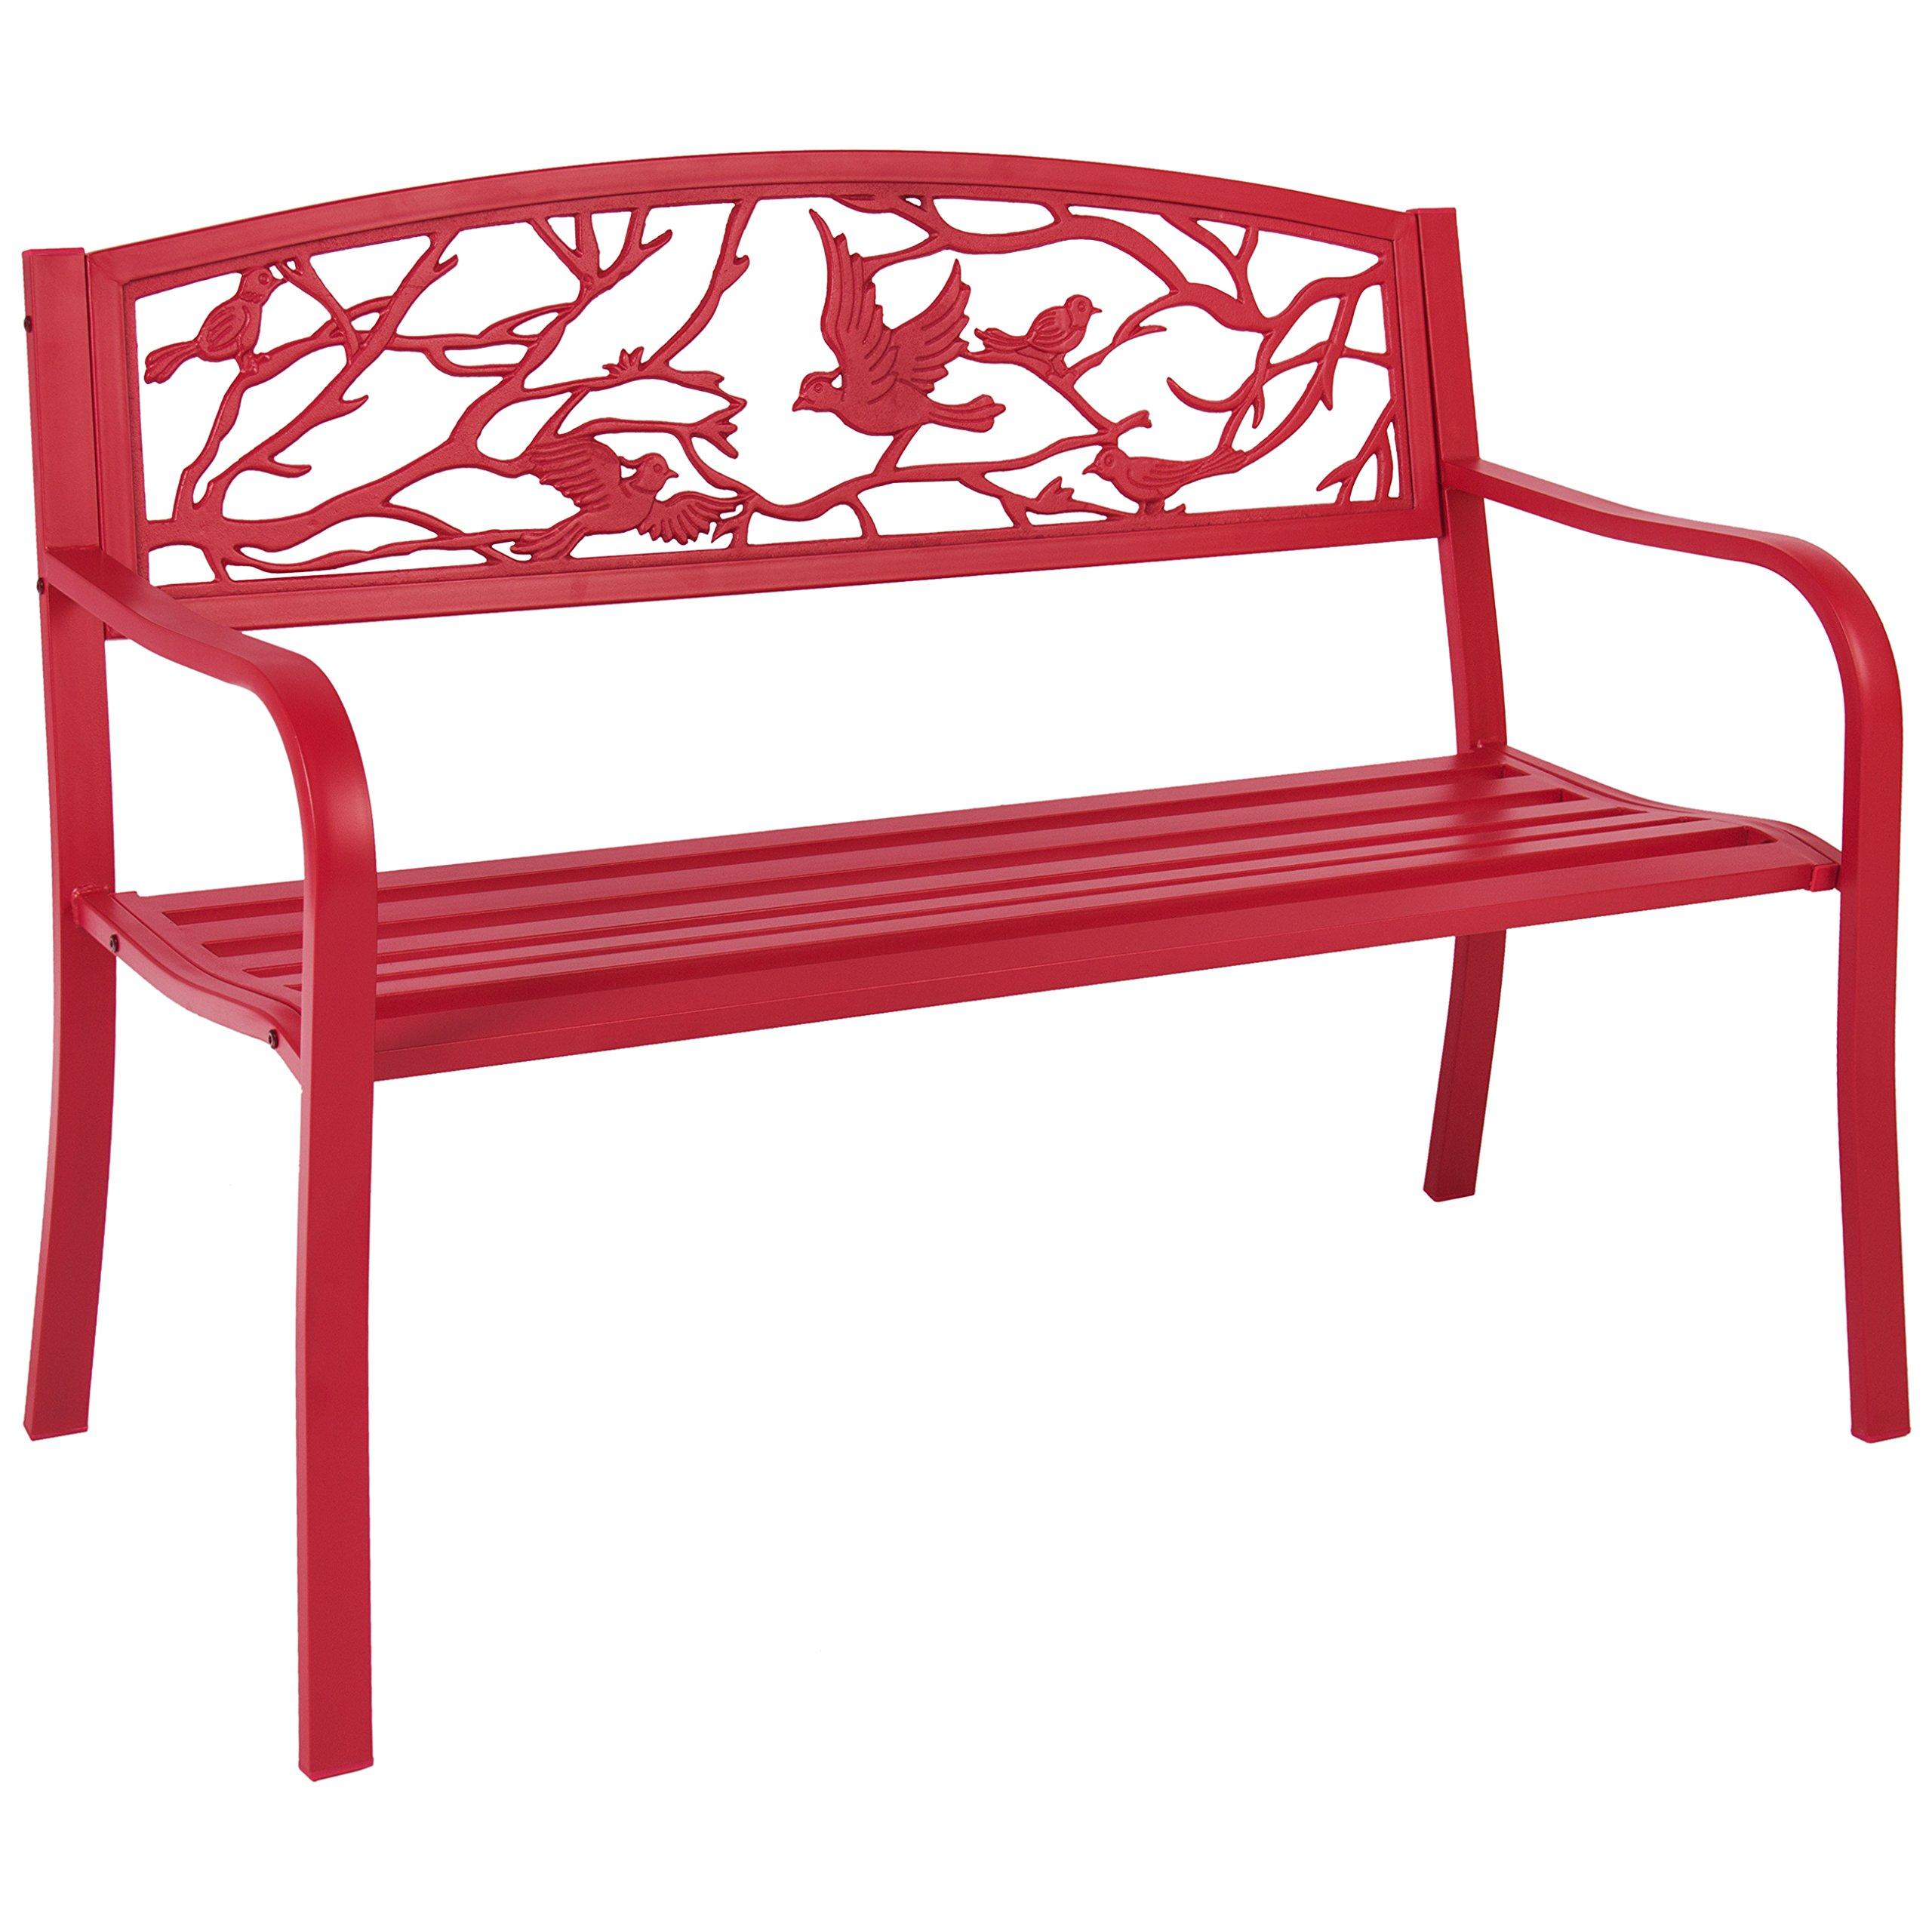 Best Choice Products Steel Park Bench Porch Furniture for Outdoor, Garden, Patio - Red by Best Choice Products (Image #1)